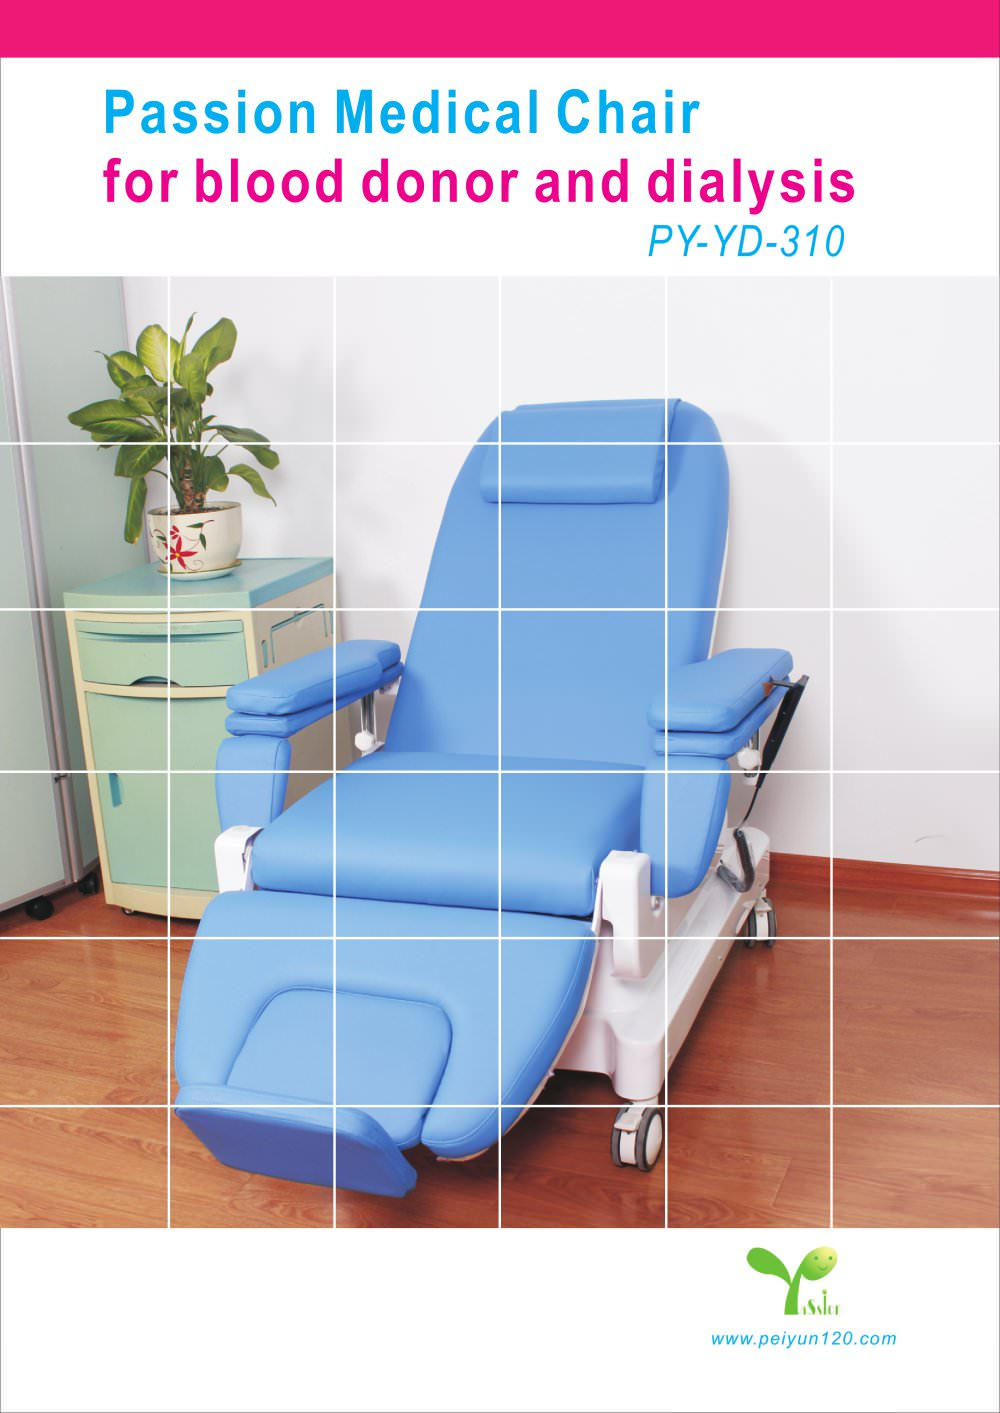 patient center yd trolley eshopmore asp electric emergency chair blood dialysis product py